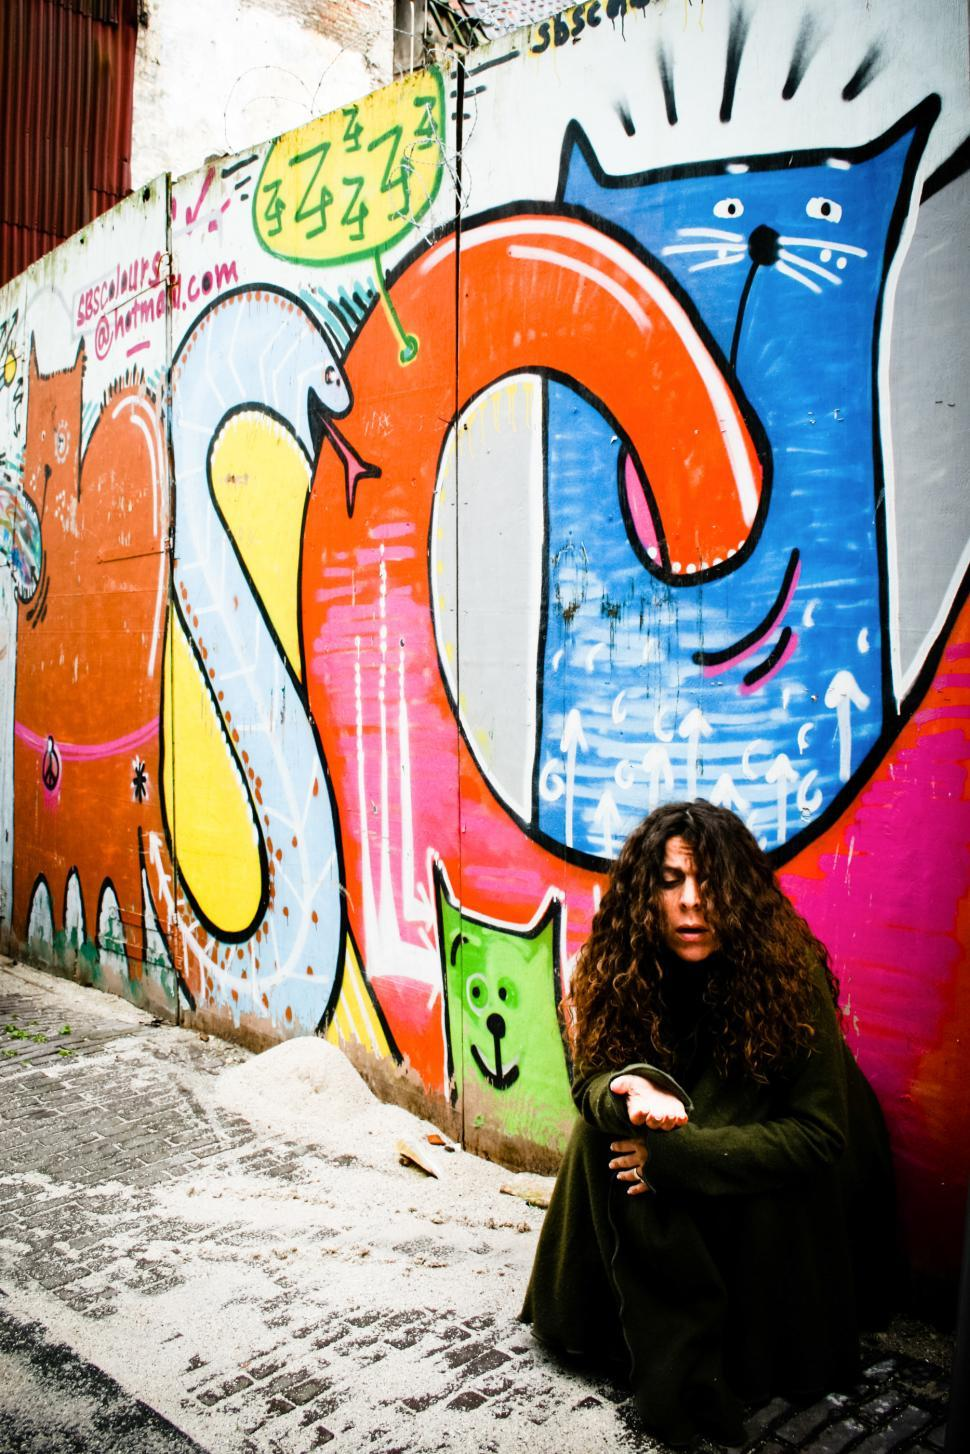 Download Free Stock HD Photo of homeless woman begging Online